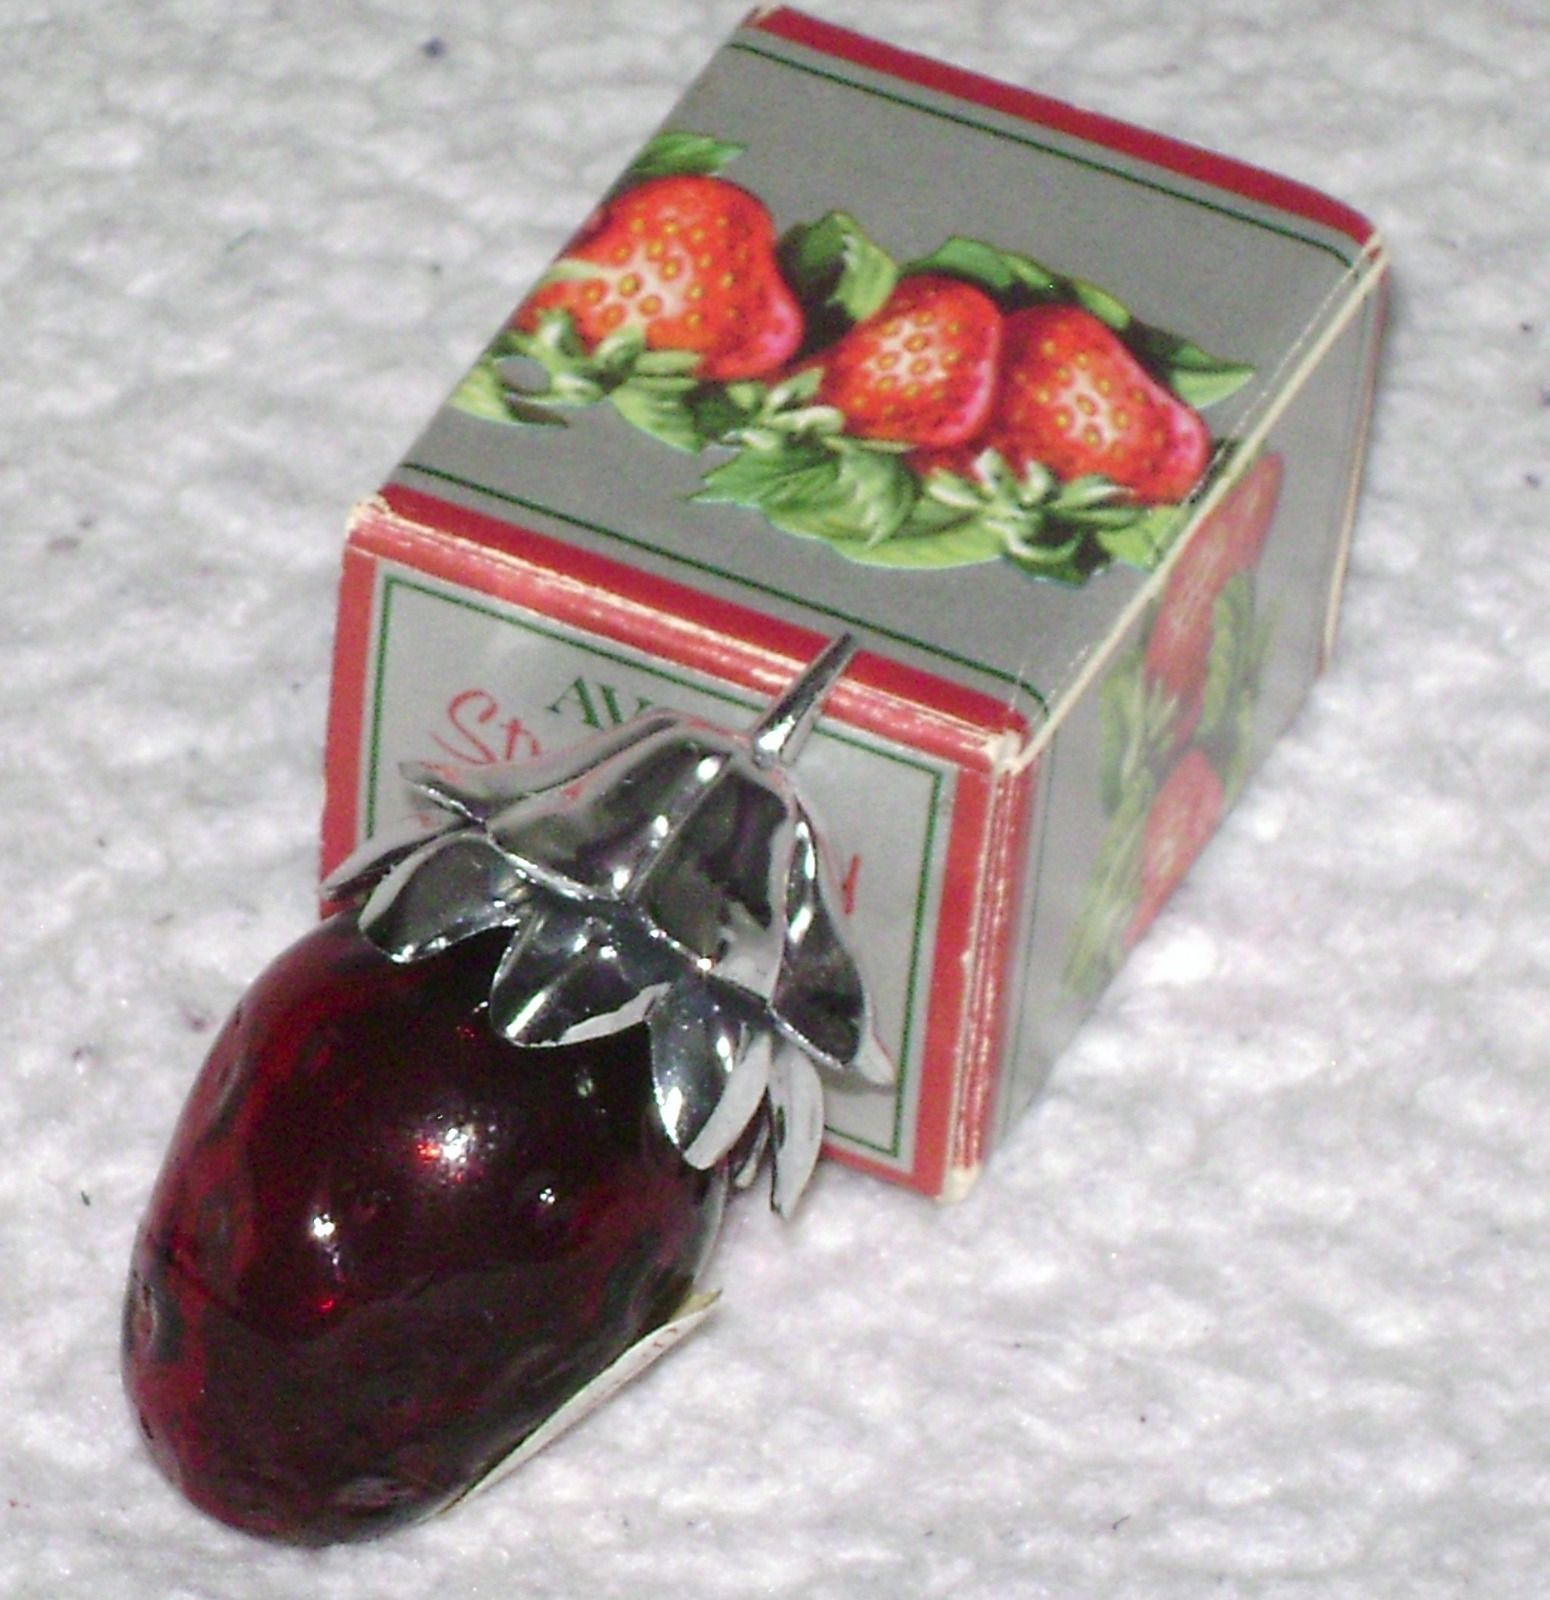 Vintage Avon Strawberry Fair Moonwind Perfume Bottle with